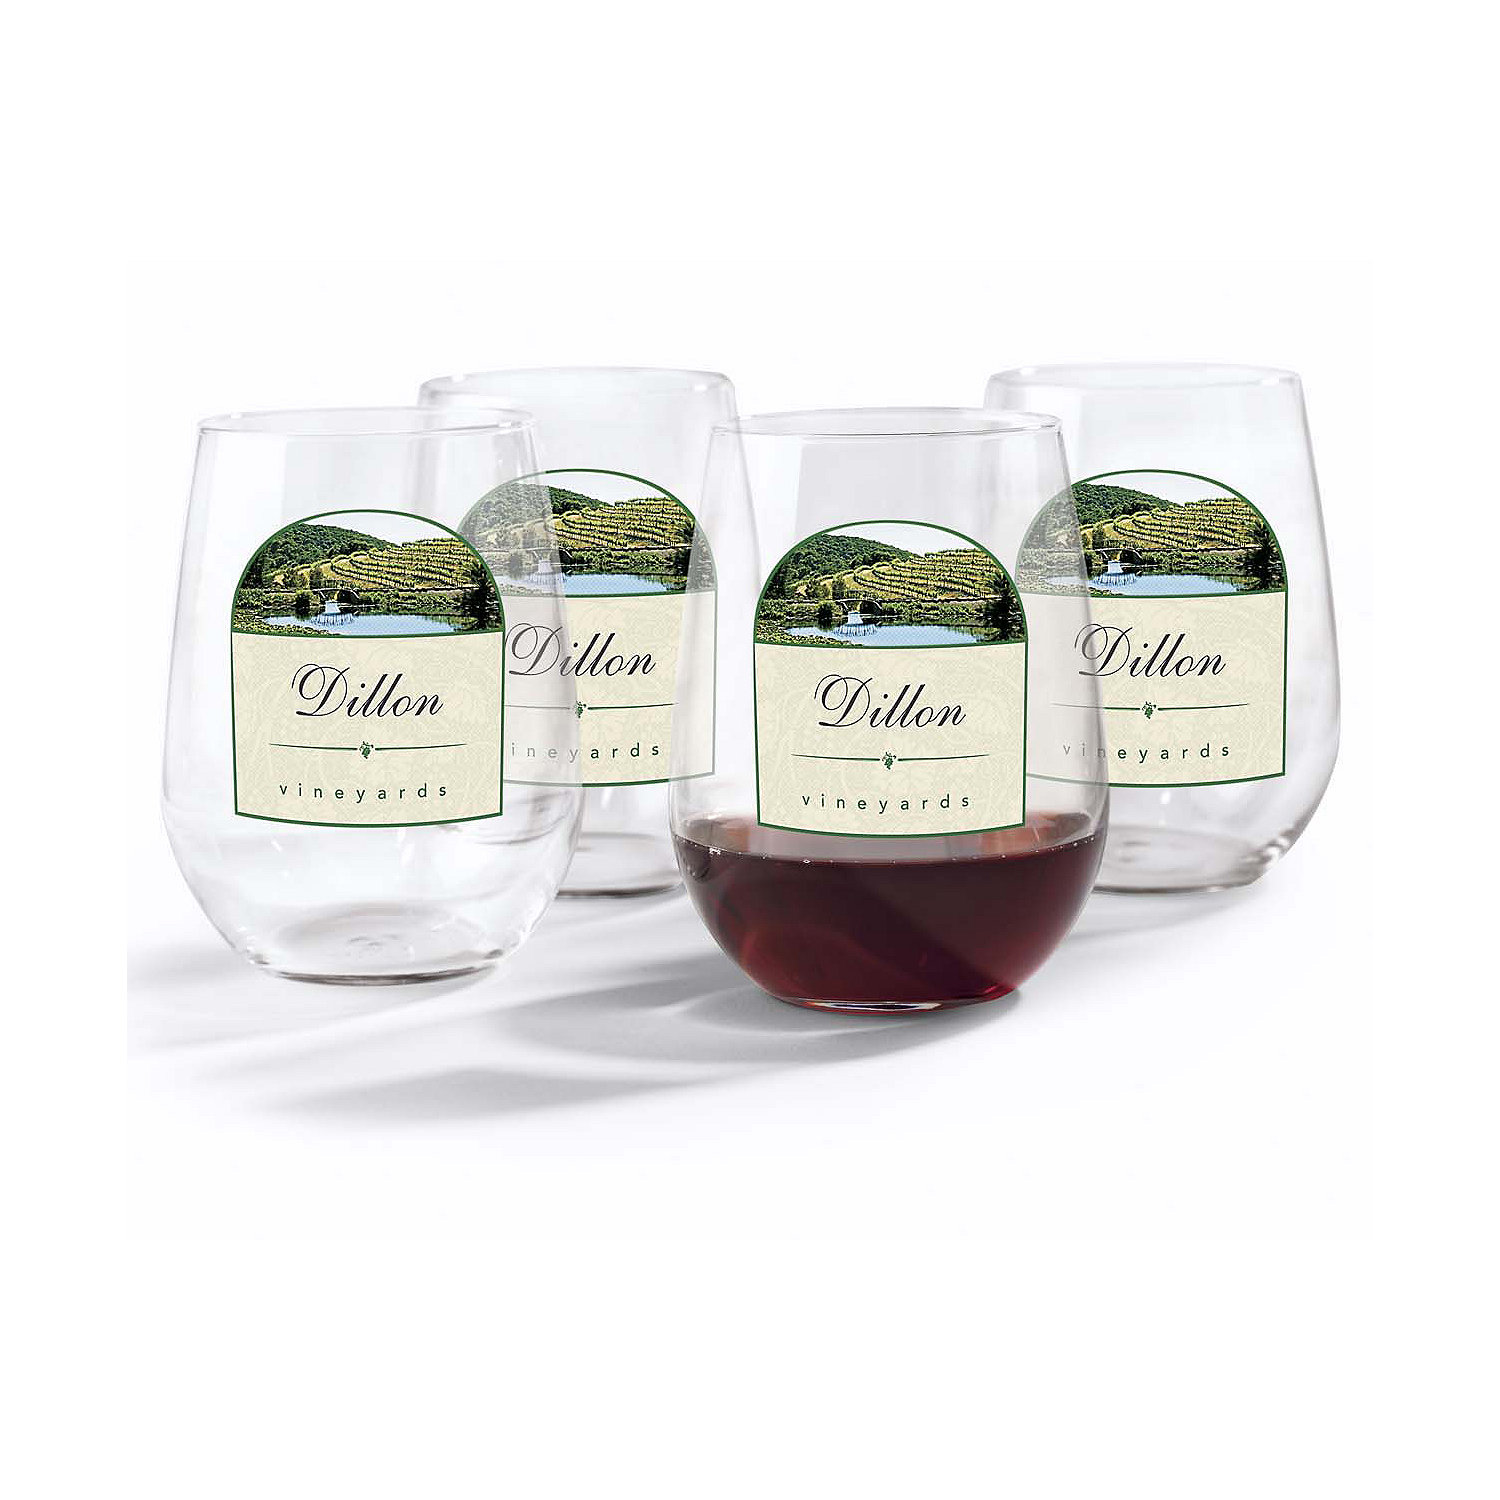 Fulgurant Box Personalized Stemless Wine Glasses Bulk Canada Personalized Vineyards Stemless Wine Glasses Preparing Zoom Personalized Vineyards Stemless Wine Glasses Wine Personalized Stemless Wine Gl inspiration Personalized Stemless Wine Glasses